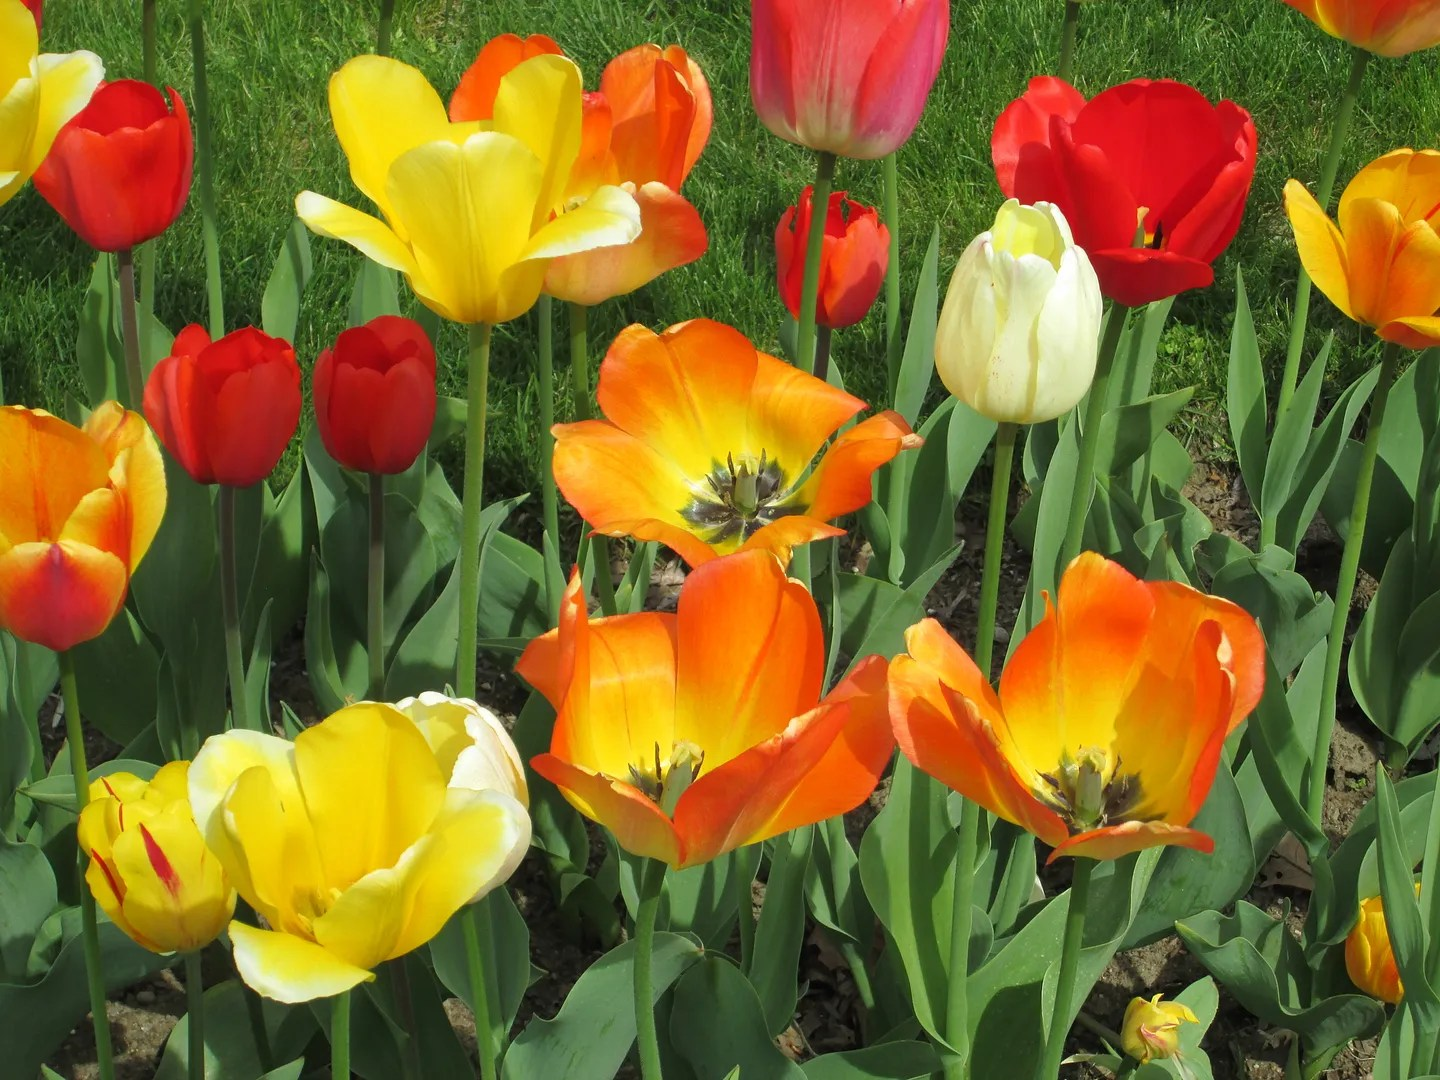 red, orange, and yellow tulips